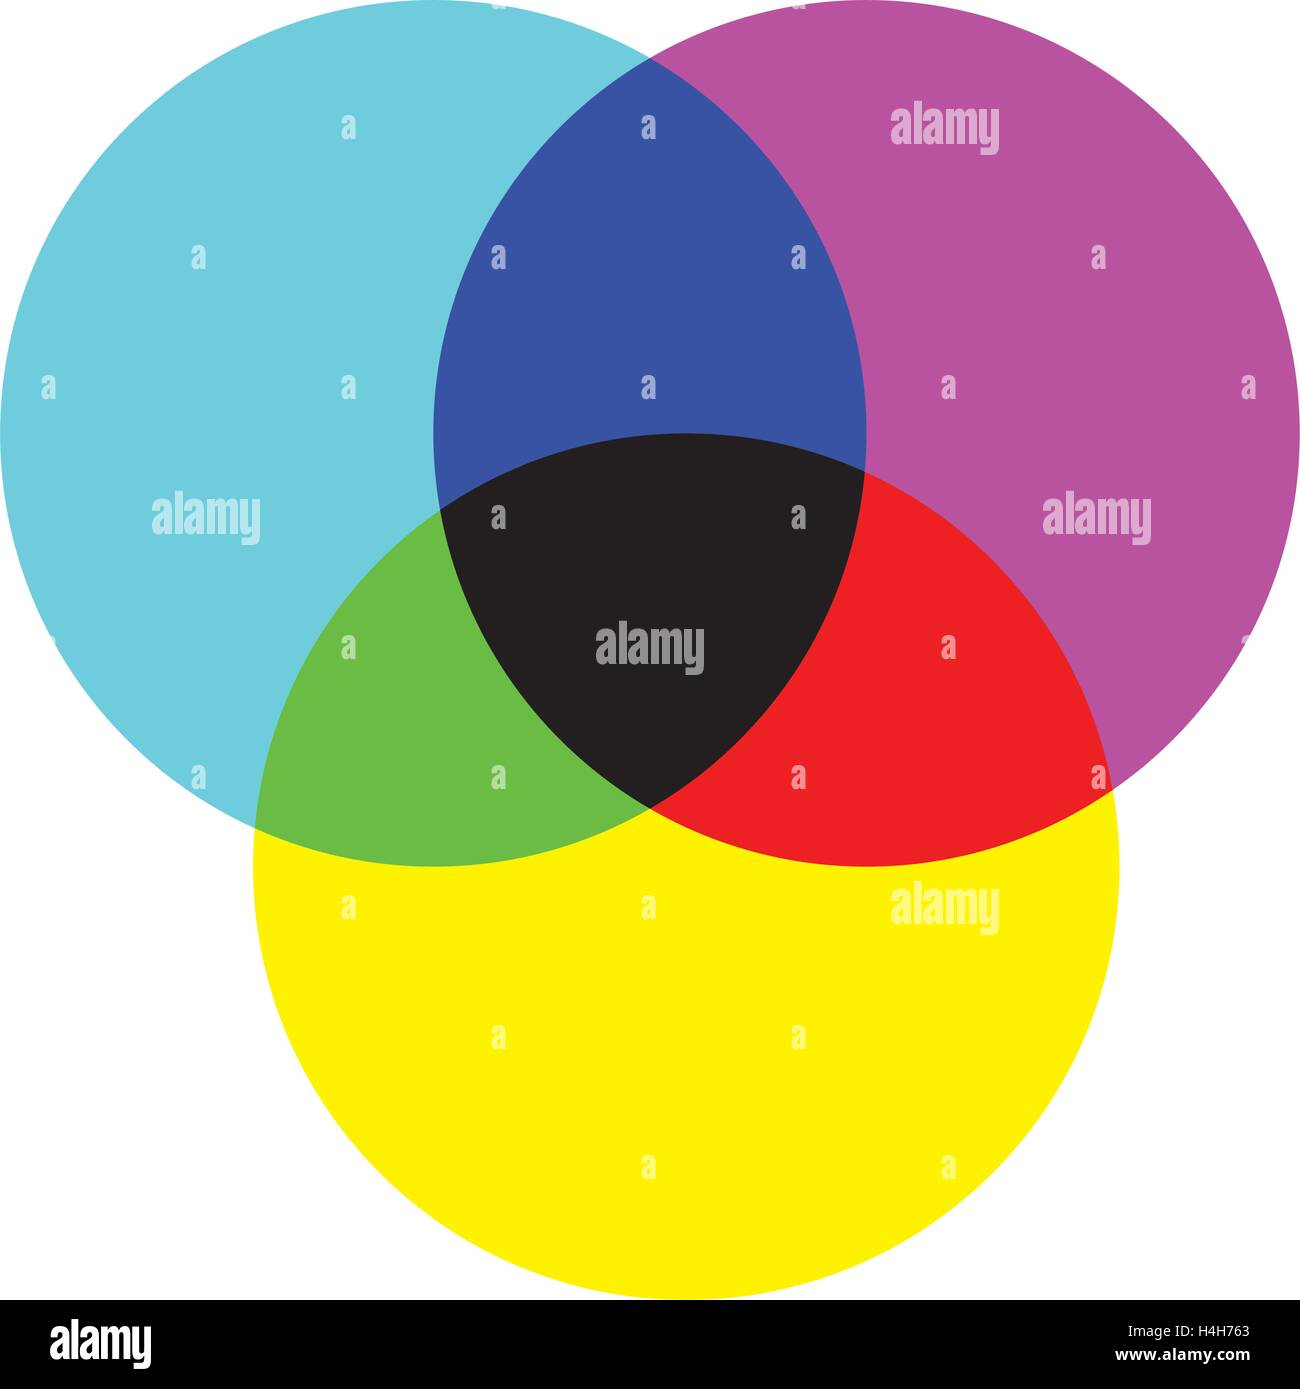 CMYK Color Wheel Design